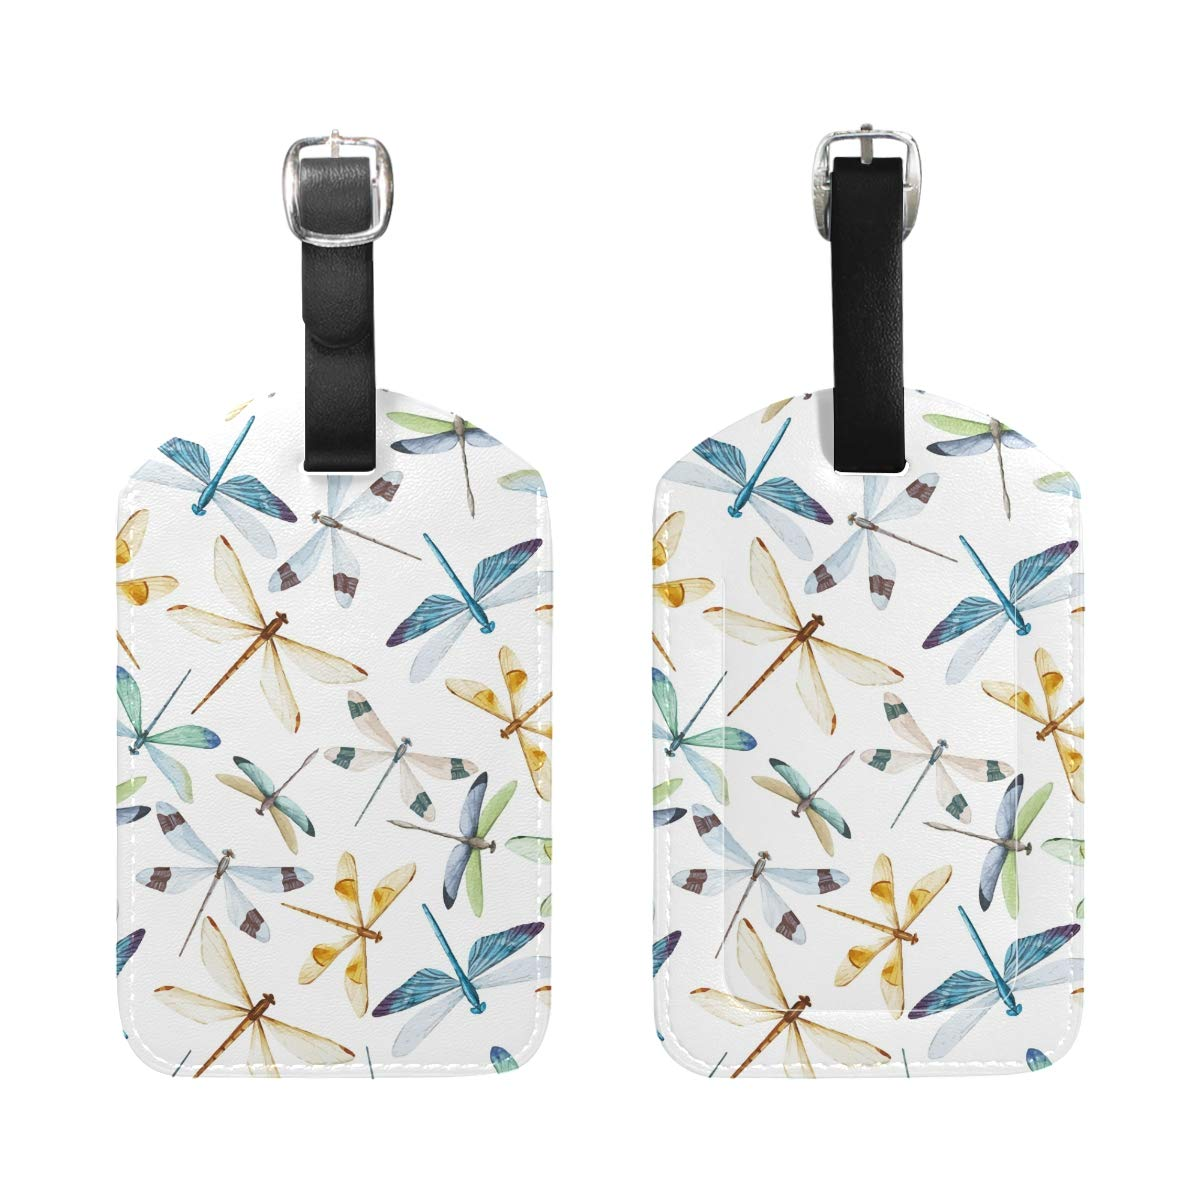 Dragonfly Pattern Handbag Tag For Travel Bag Suitcase Accessories 2 Pack Luggage Tags